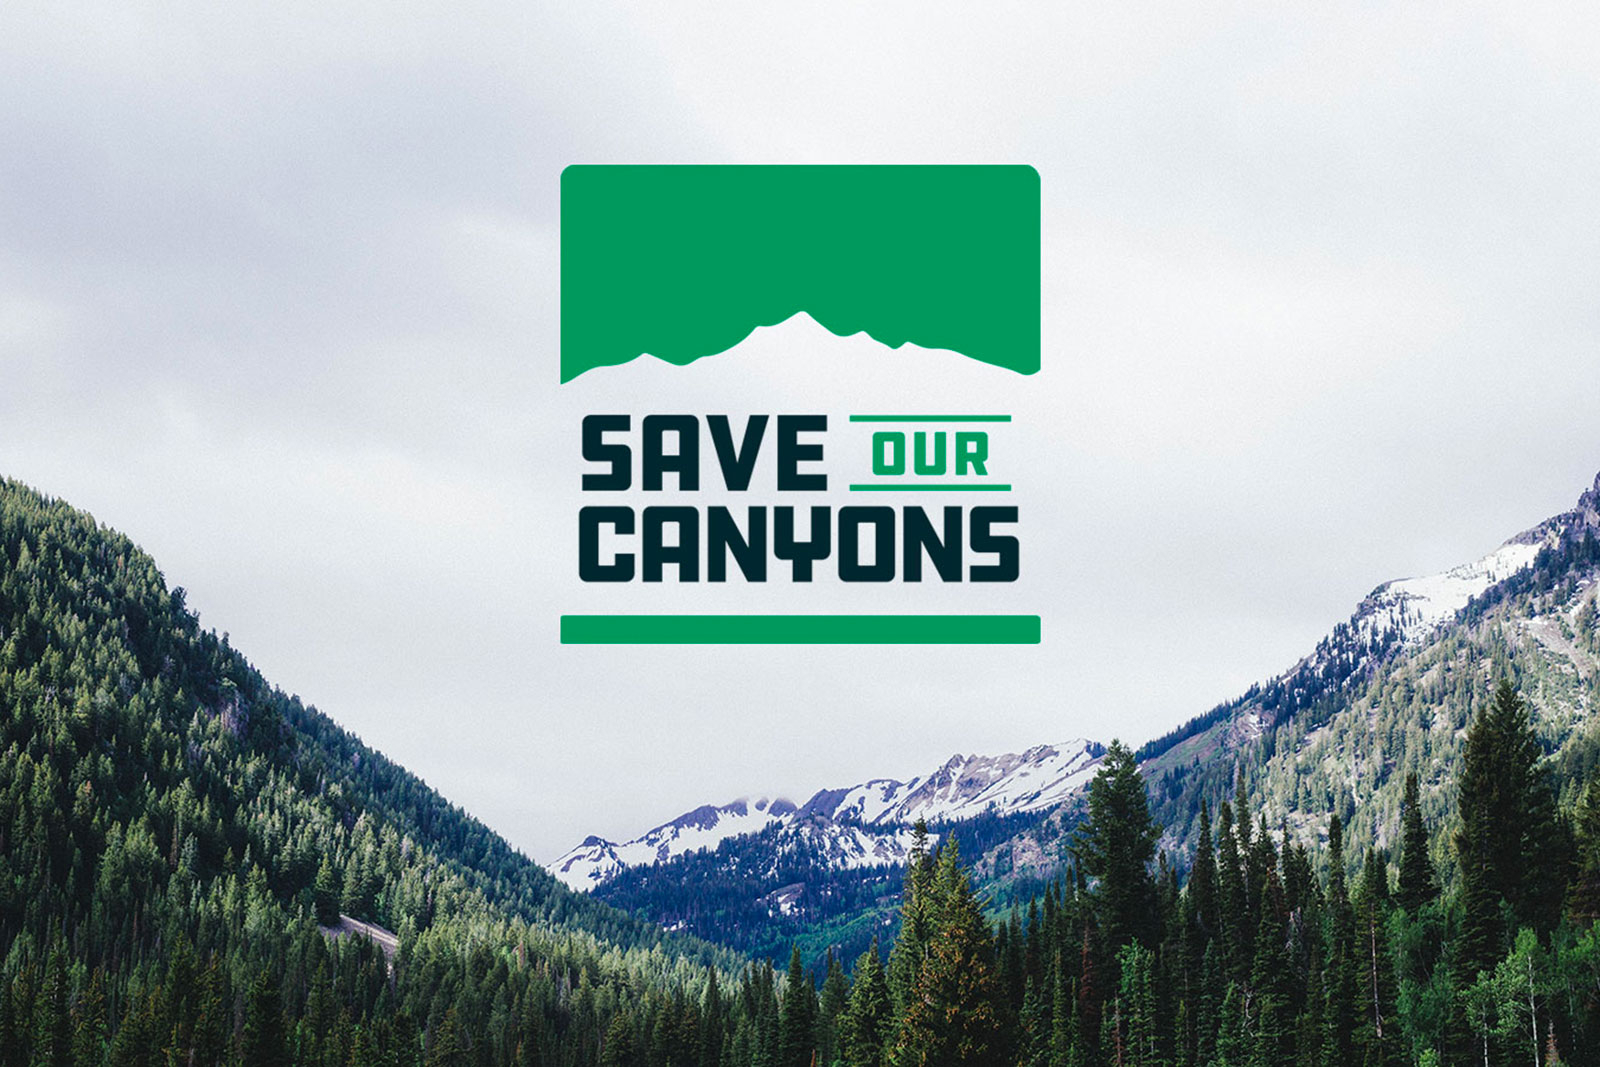 Save Our Canyons